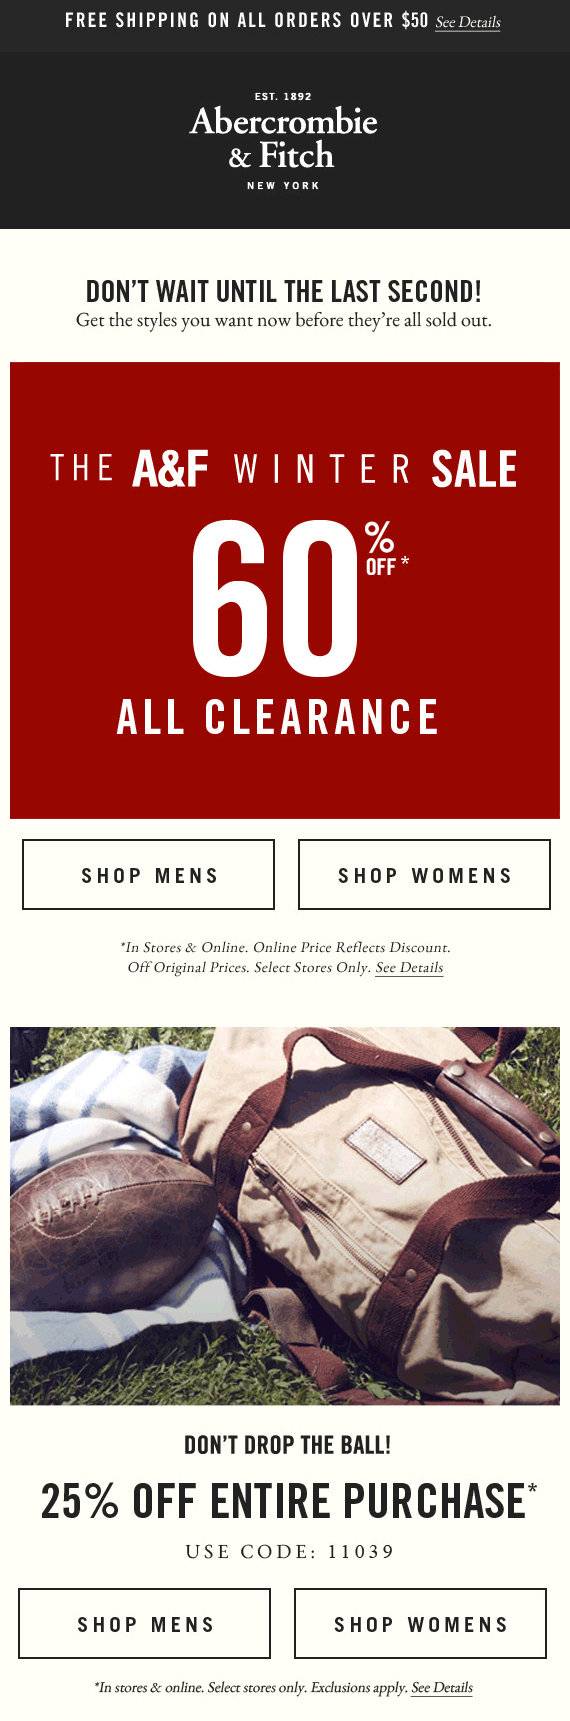 Abercrombie & Fitch Coupon August 2019 60% off clearance + 25% off everything at Abercrombie & Fitch, or online via promo code 11039